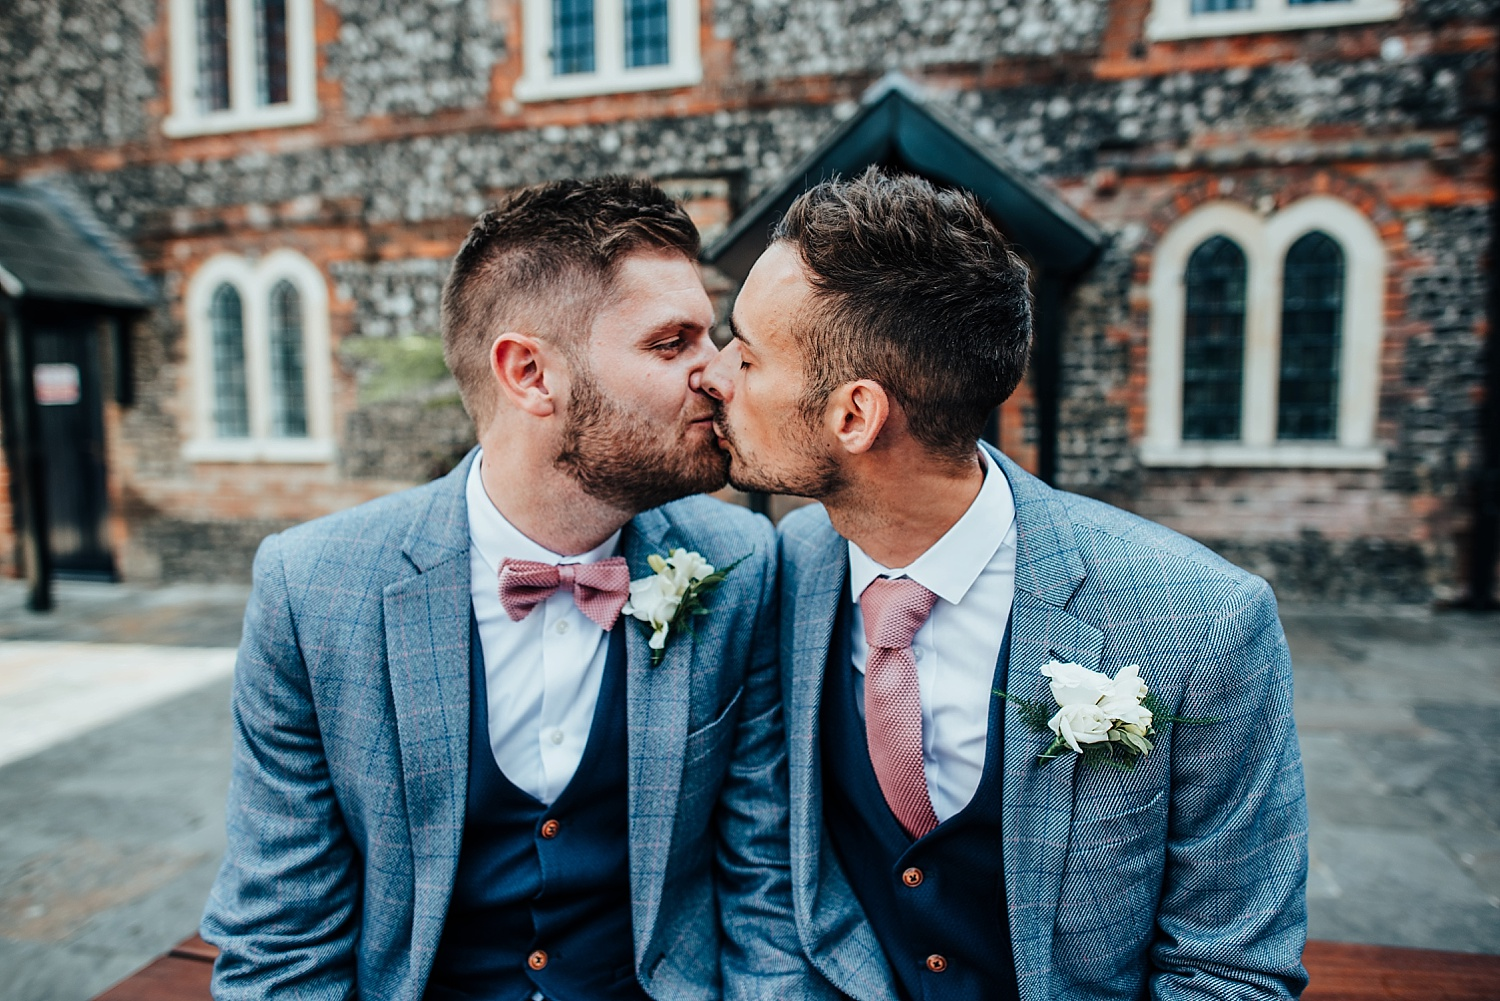 two men kissing at wedding at bombay sapphire distillery wedding laverstoke